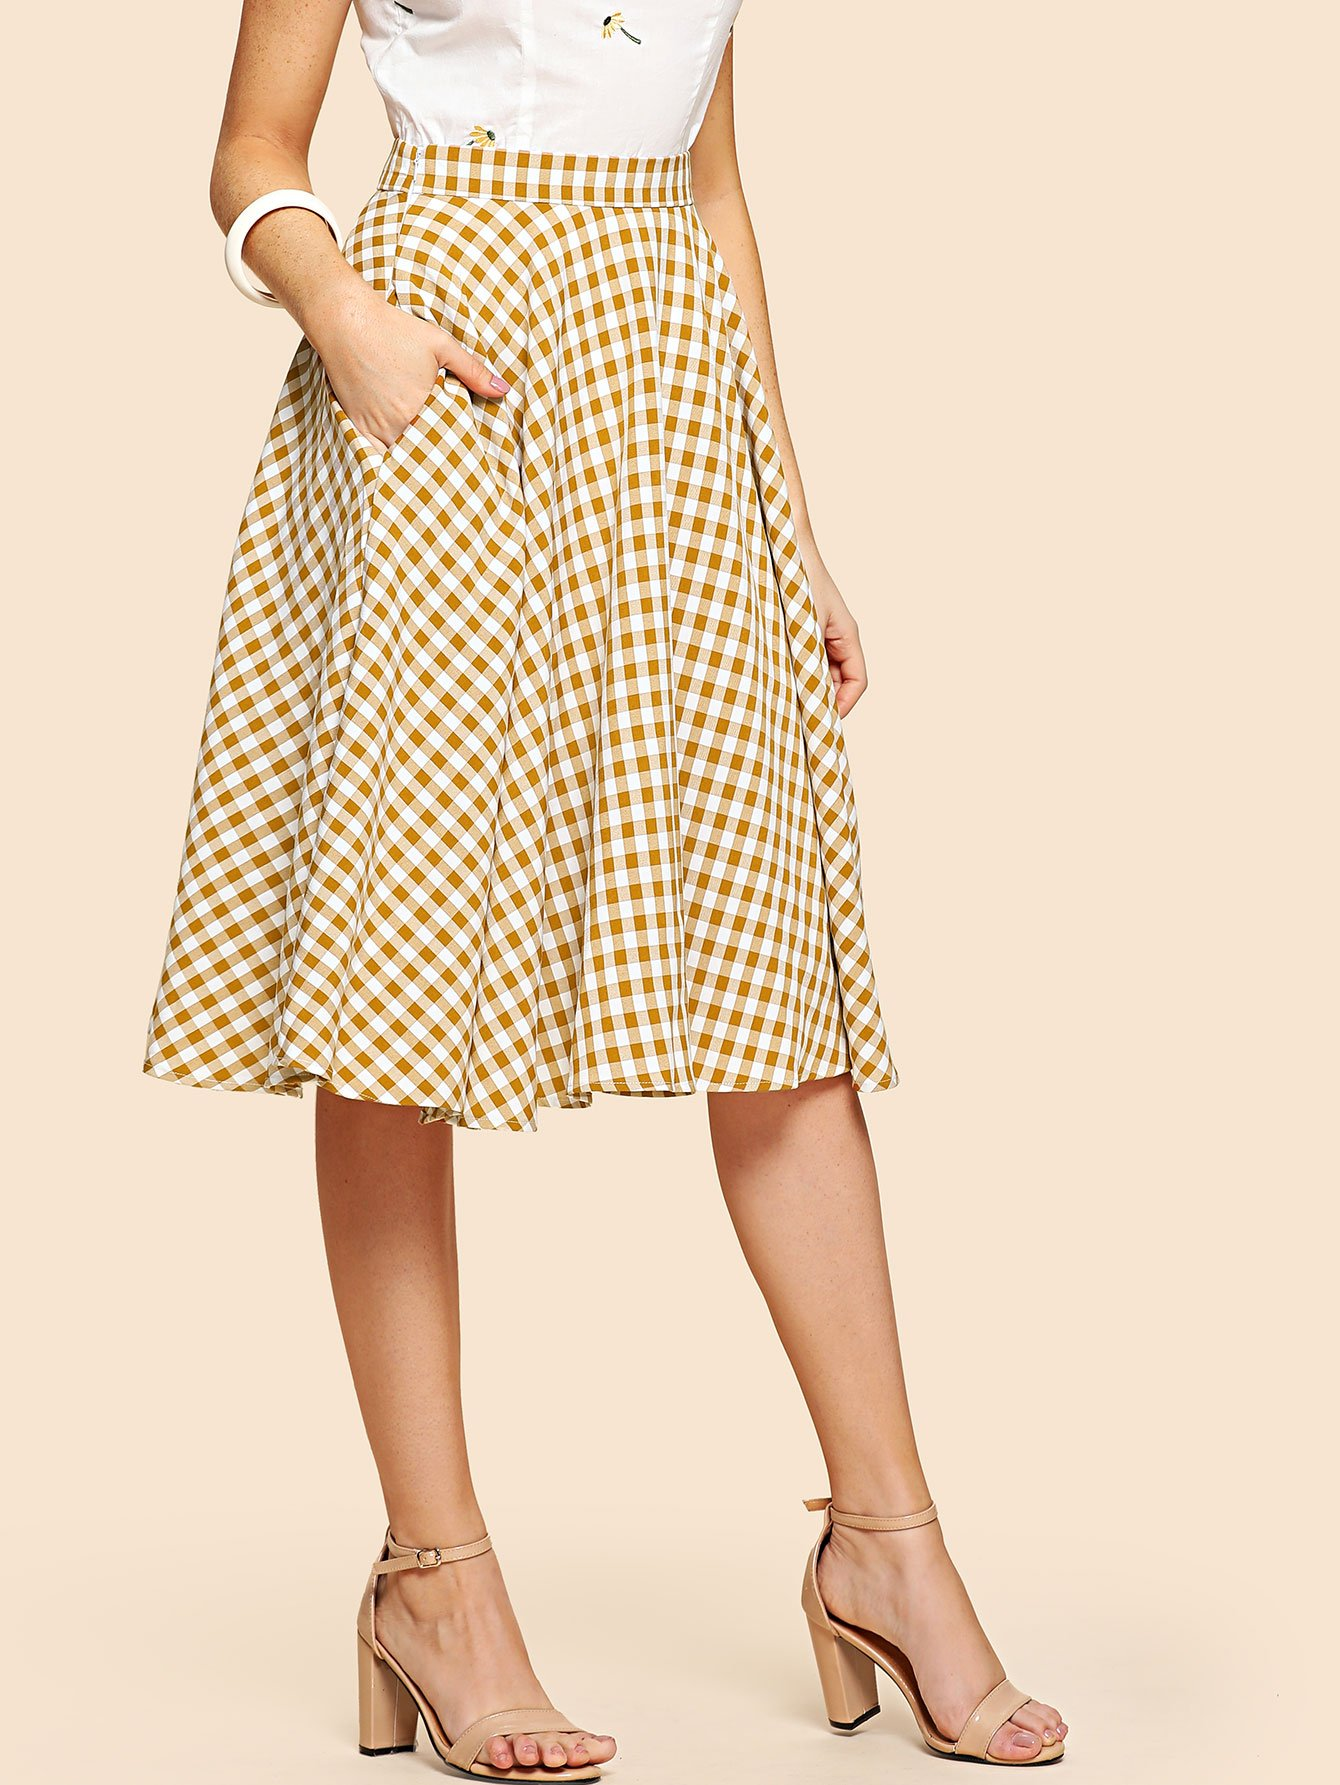 Band Waist Gingham Skirt ruffle waist zip back scallop hem embroidered gingham skirt